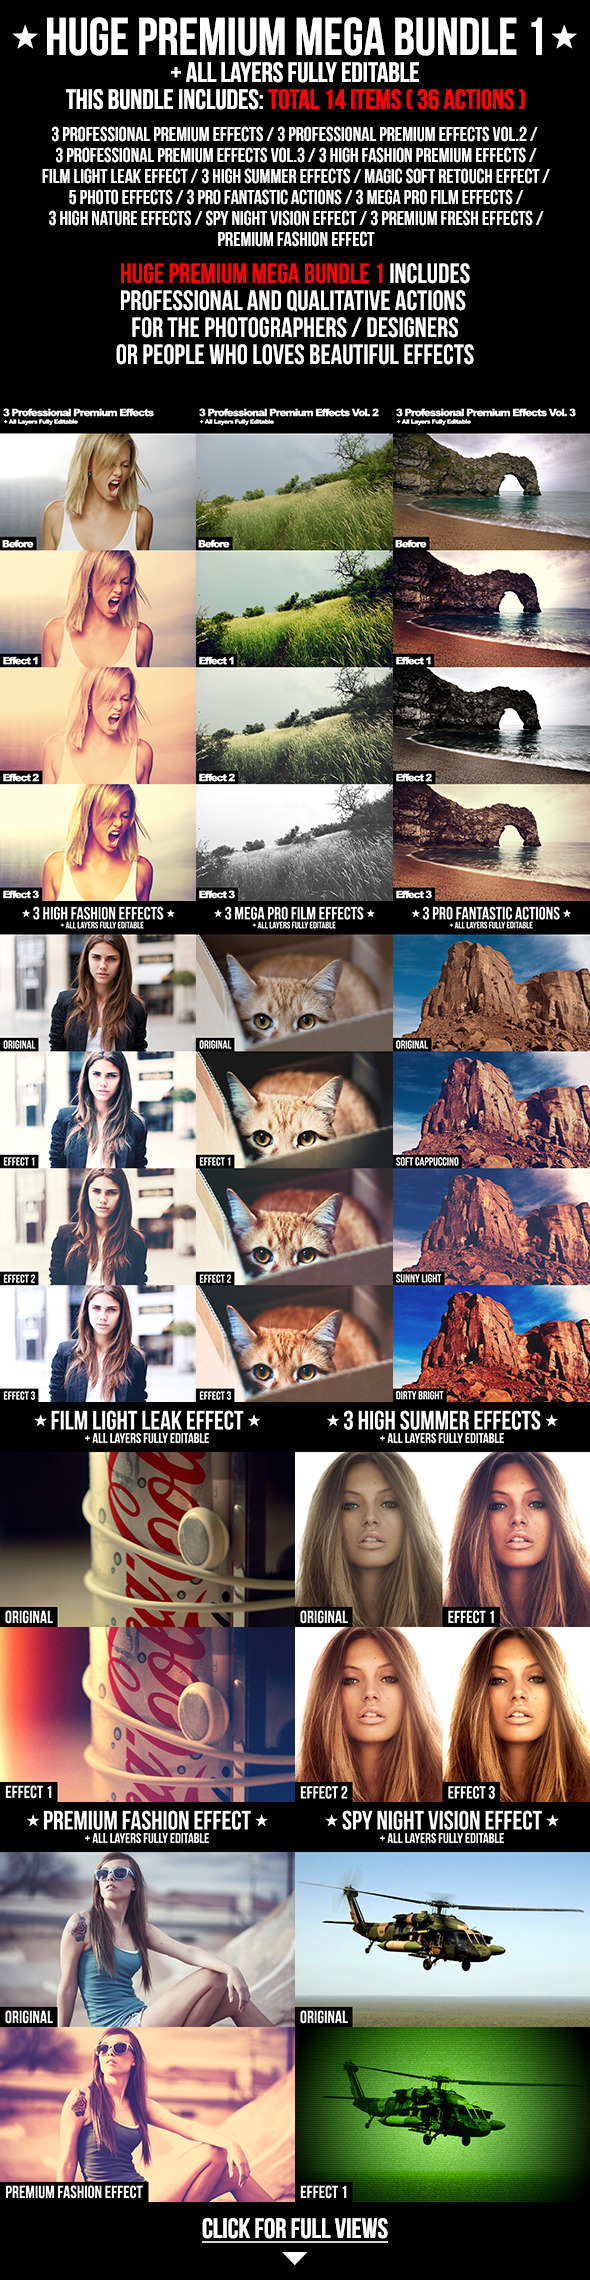 Huge Premium Mega Bundle 1 - Photo Effects Actions